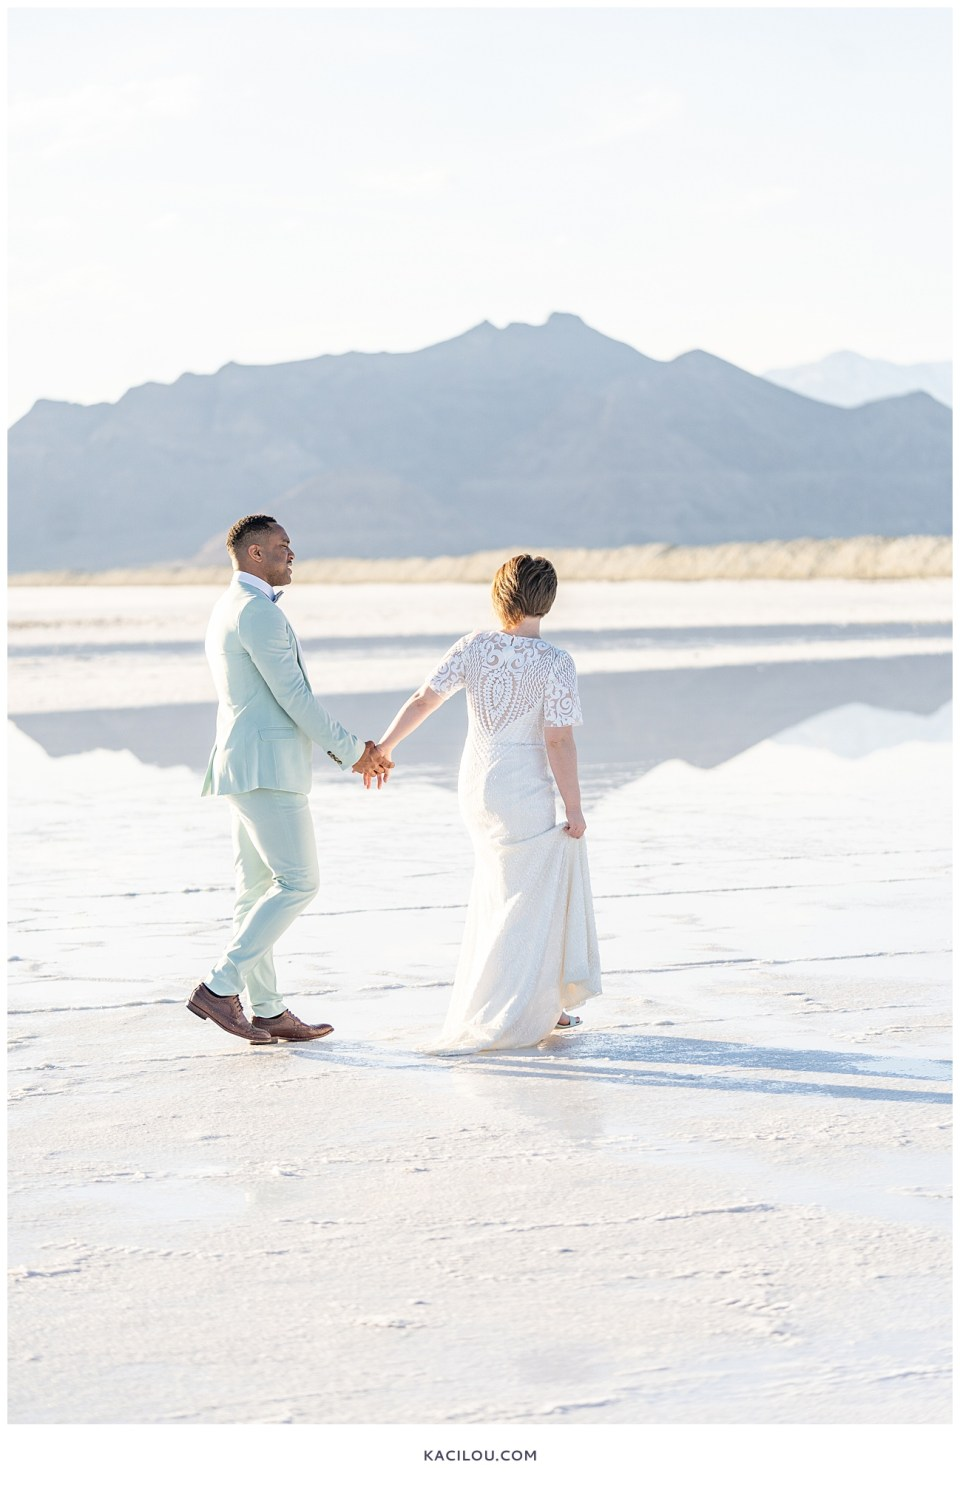 salt flats utah elopement tuesdae and ethan by kaci lou photography-150.jpg